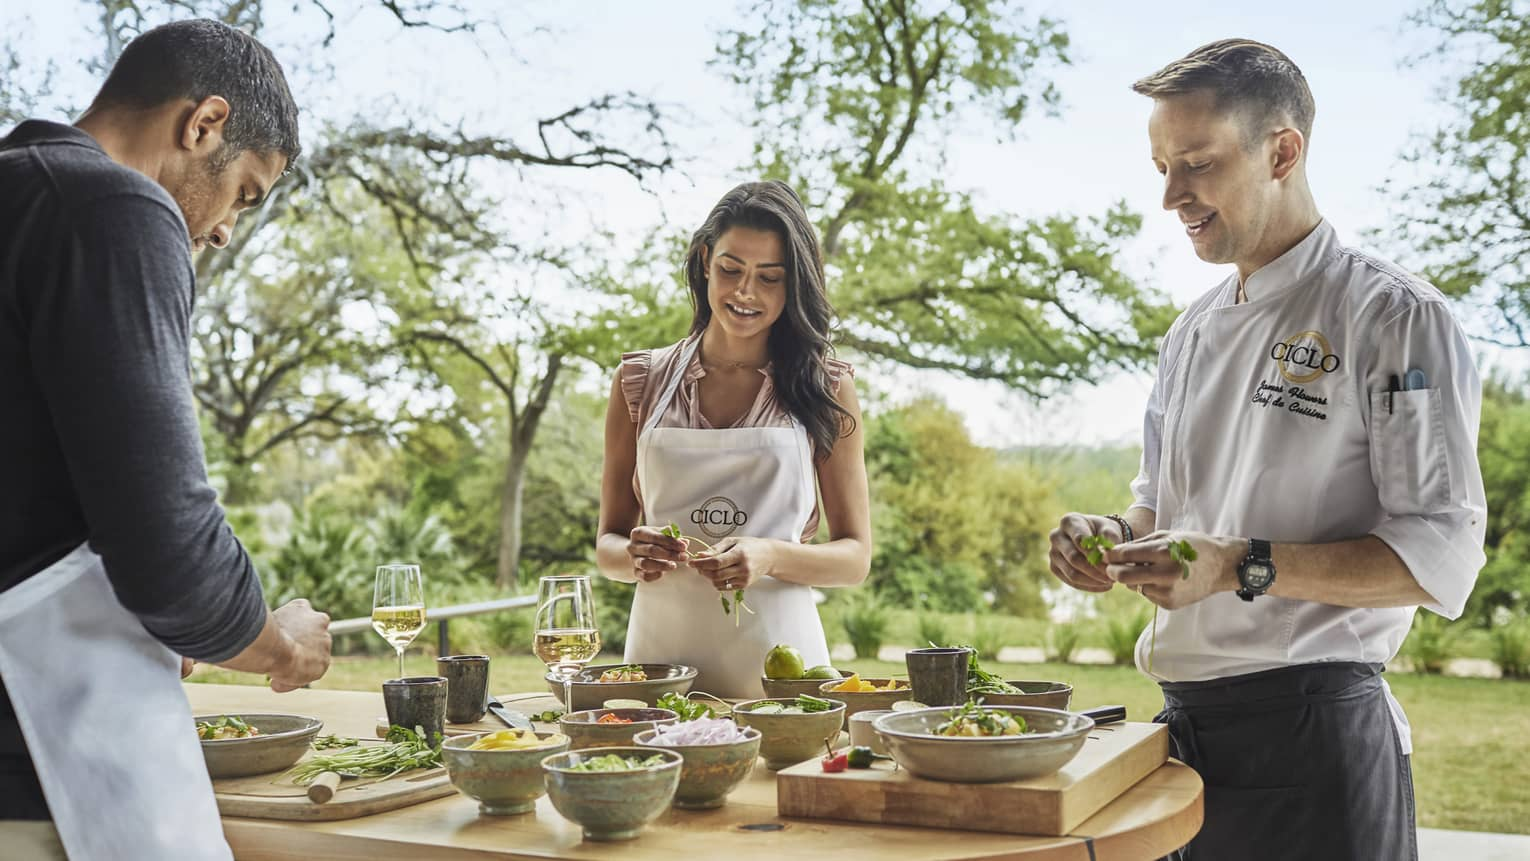 A four seasons chef guides a couple through an outdoor cooking class at four seasons hotel sydney